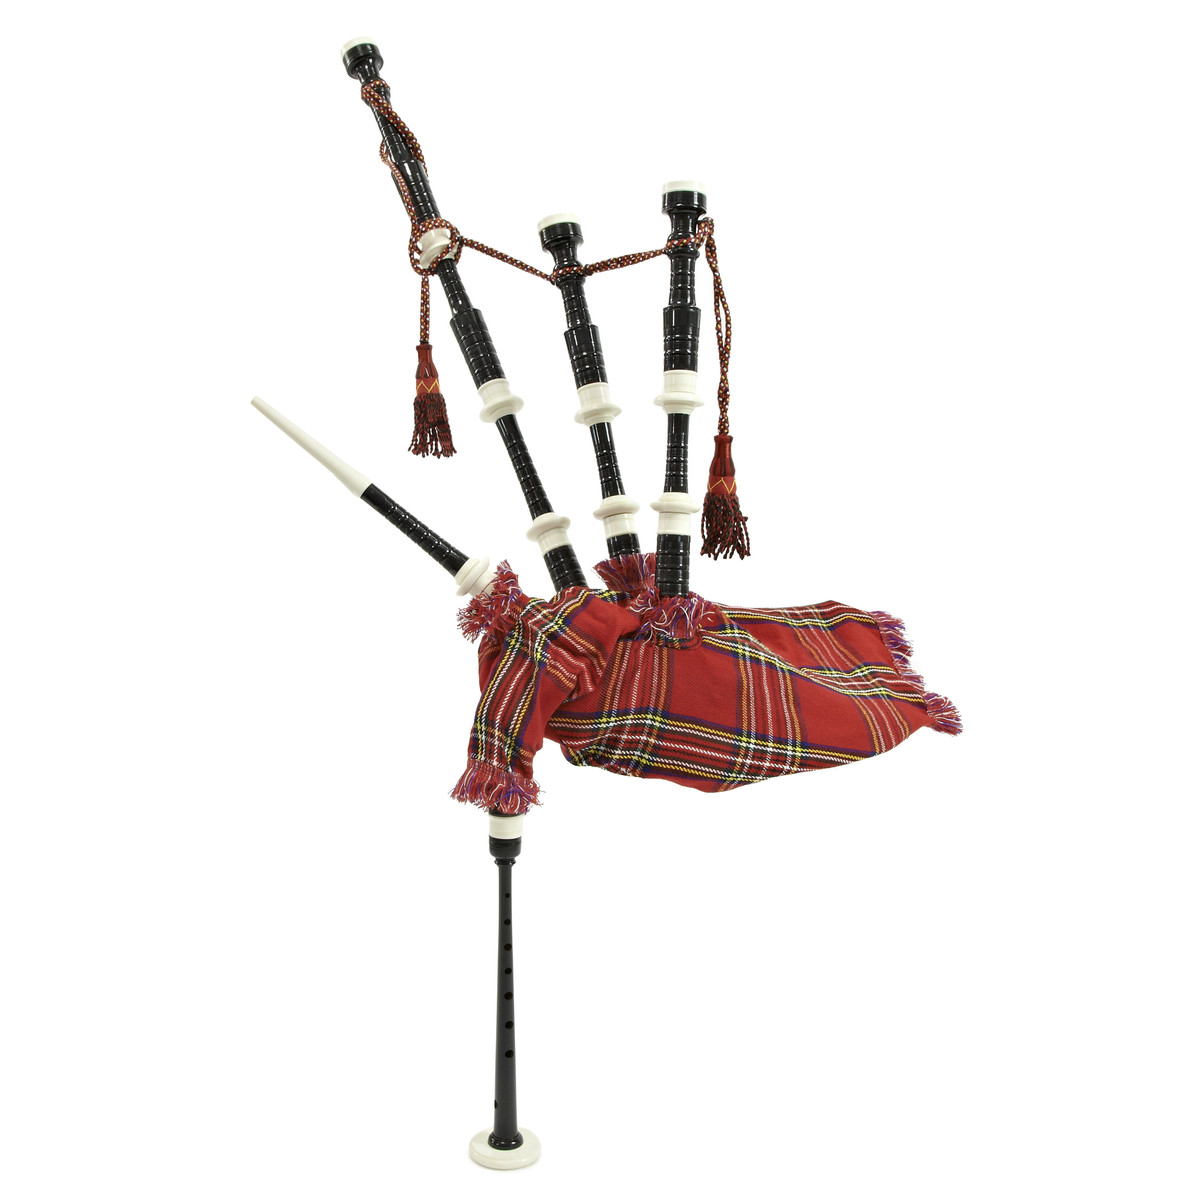 Image of Deluxe Bagpipes by Gear4music Royal Stewart